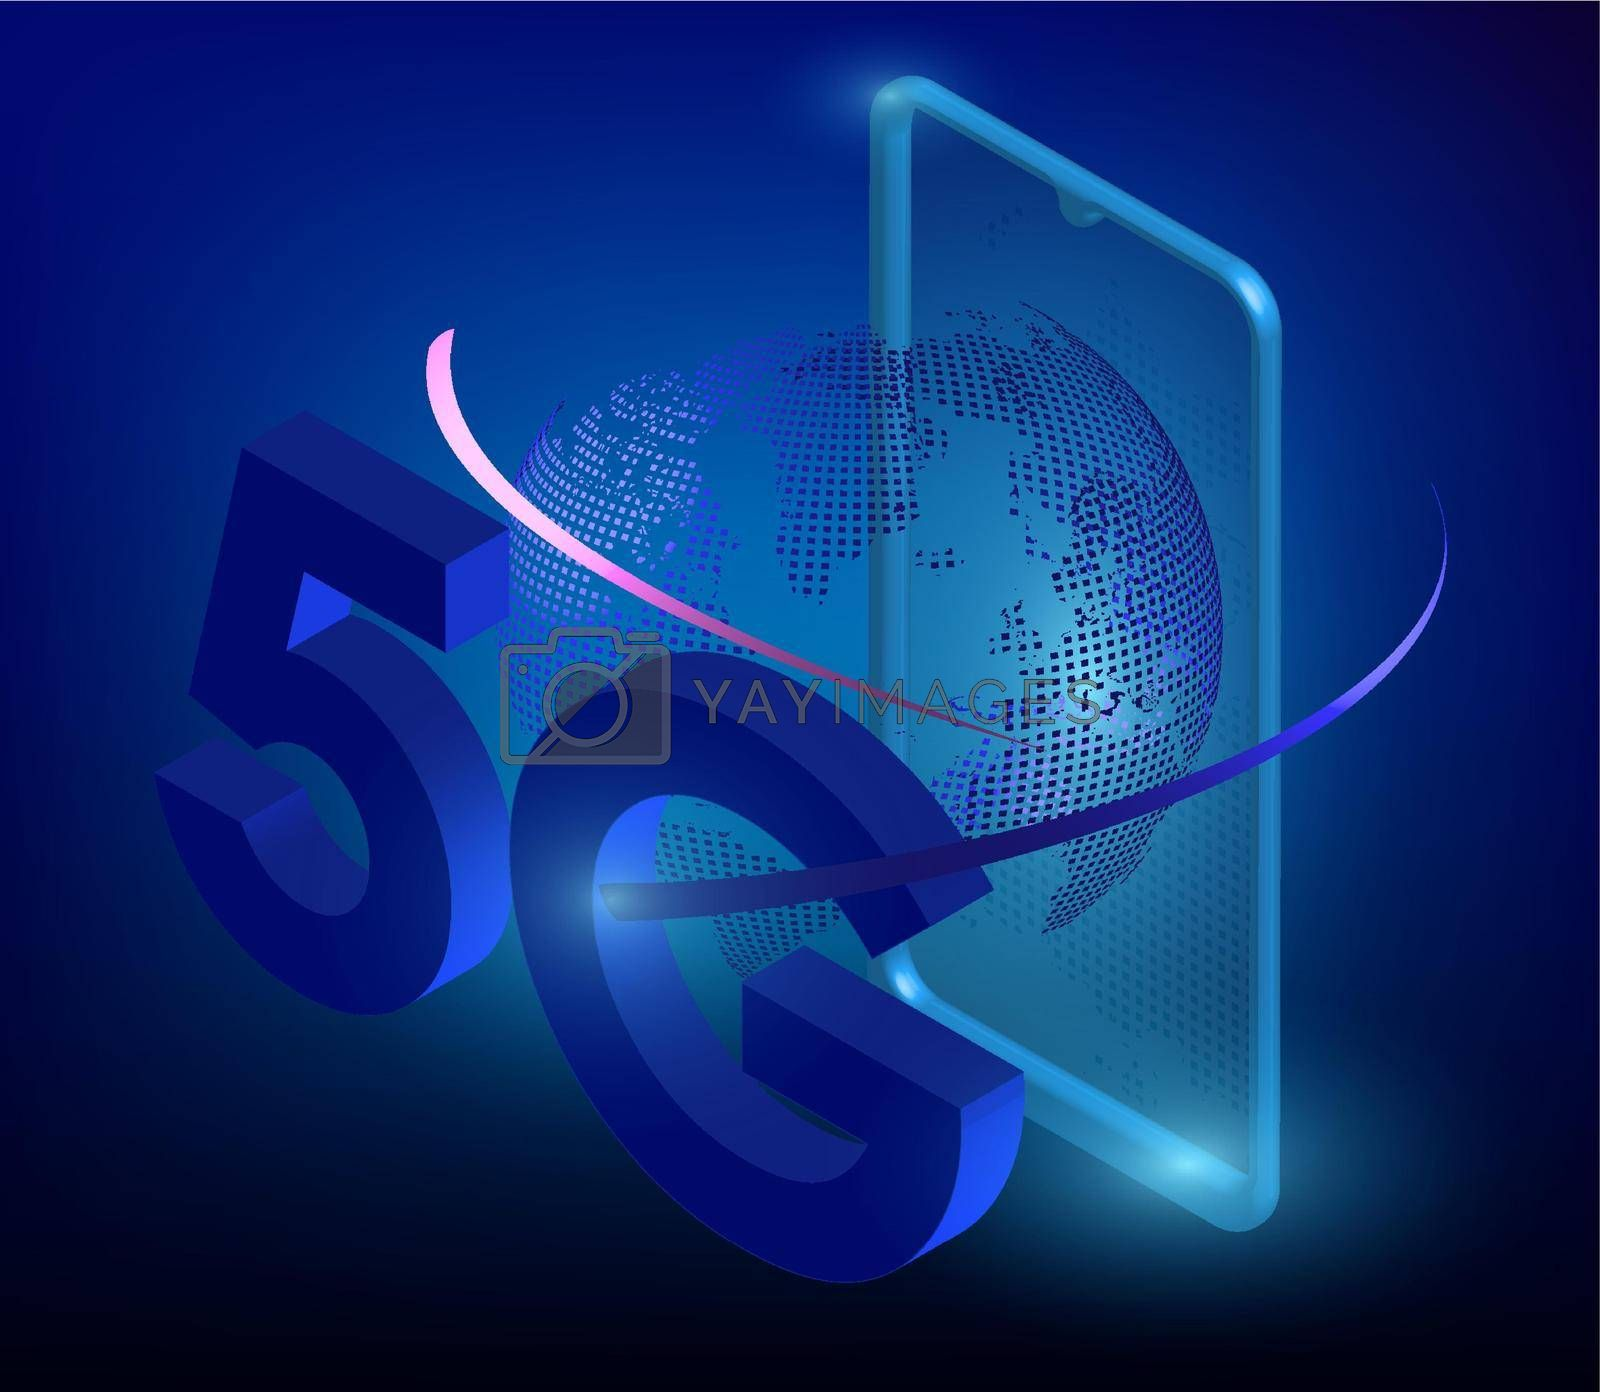 5G sign on the background of the smartphone in digital style. The new standard for internet connectivity. High speed network global network on blue background